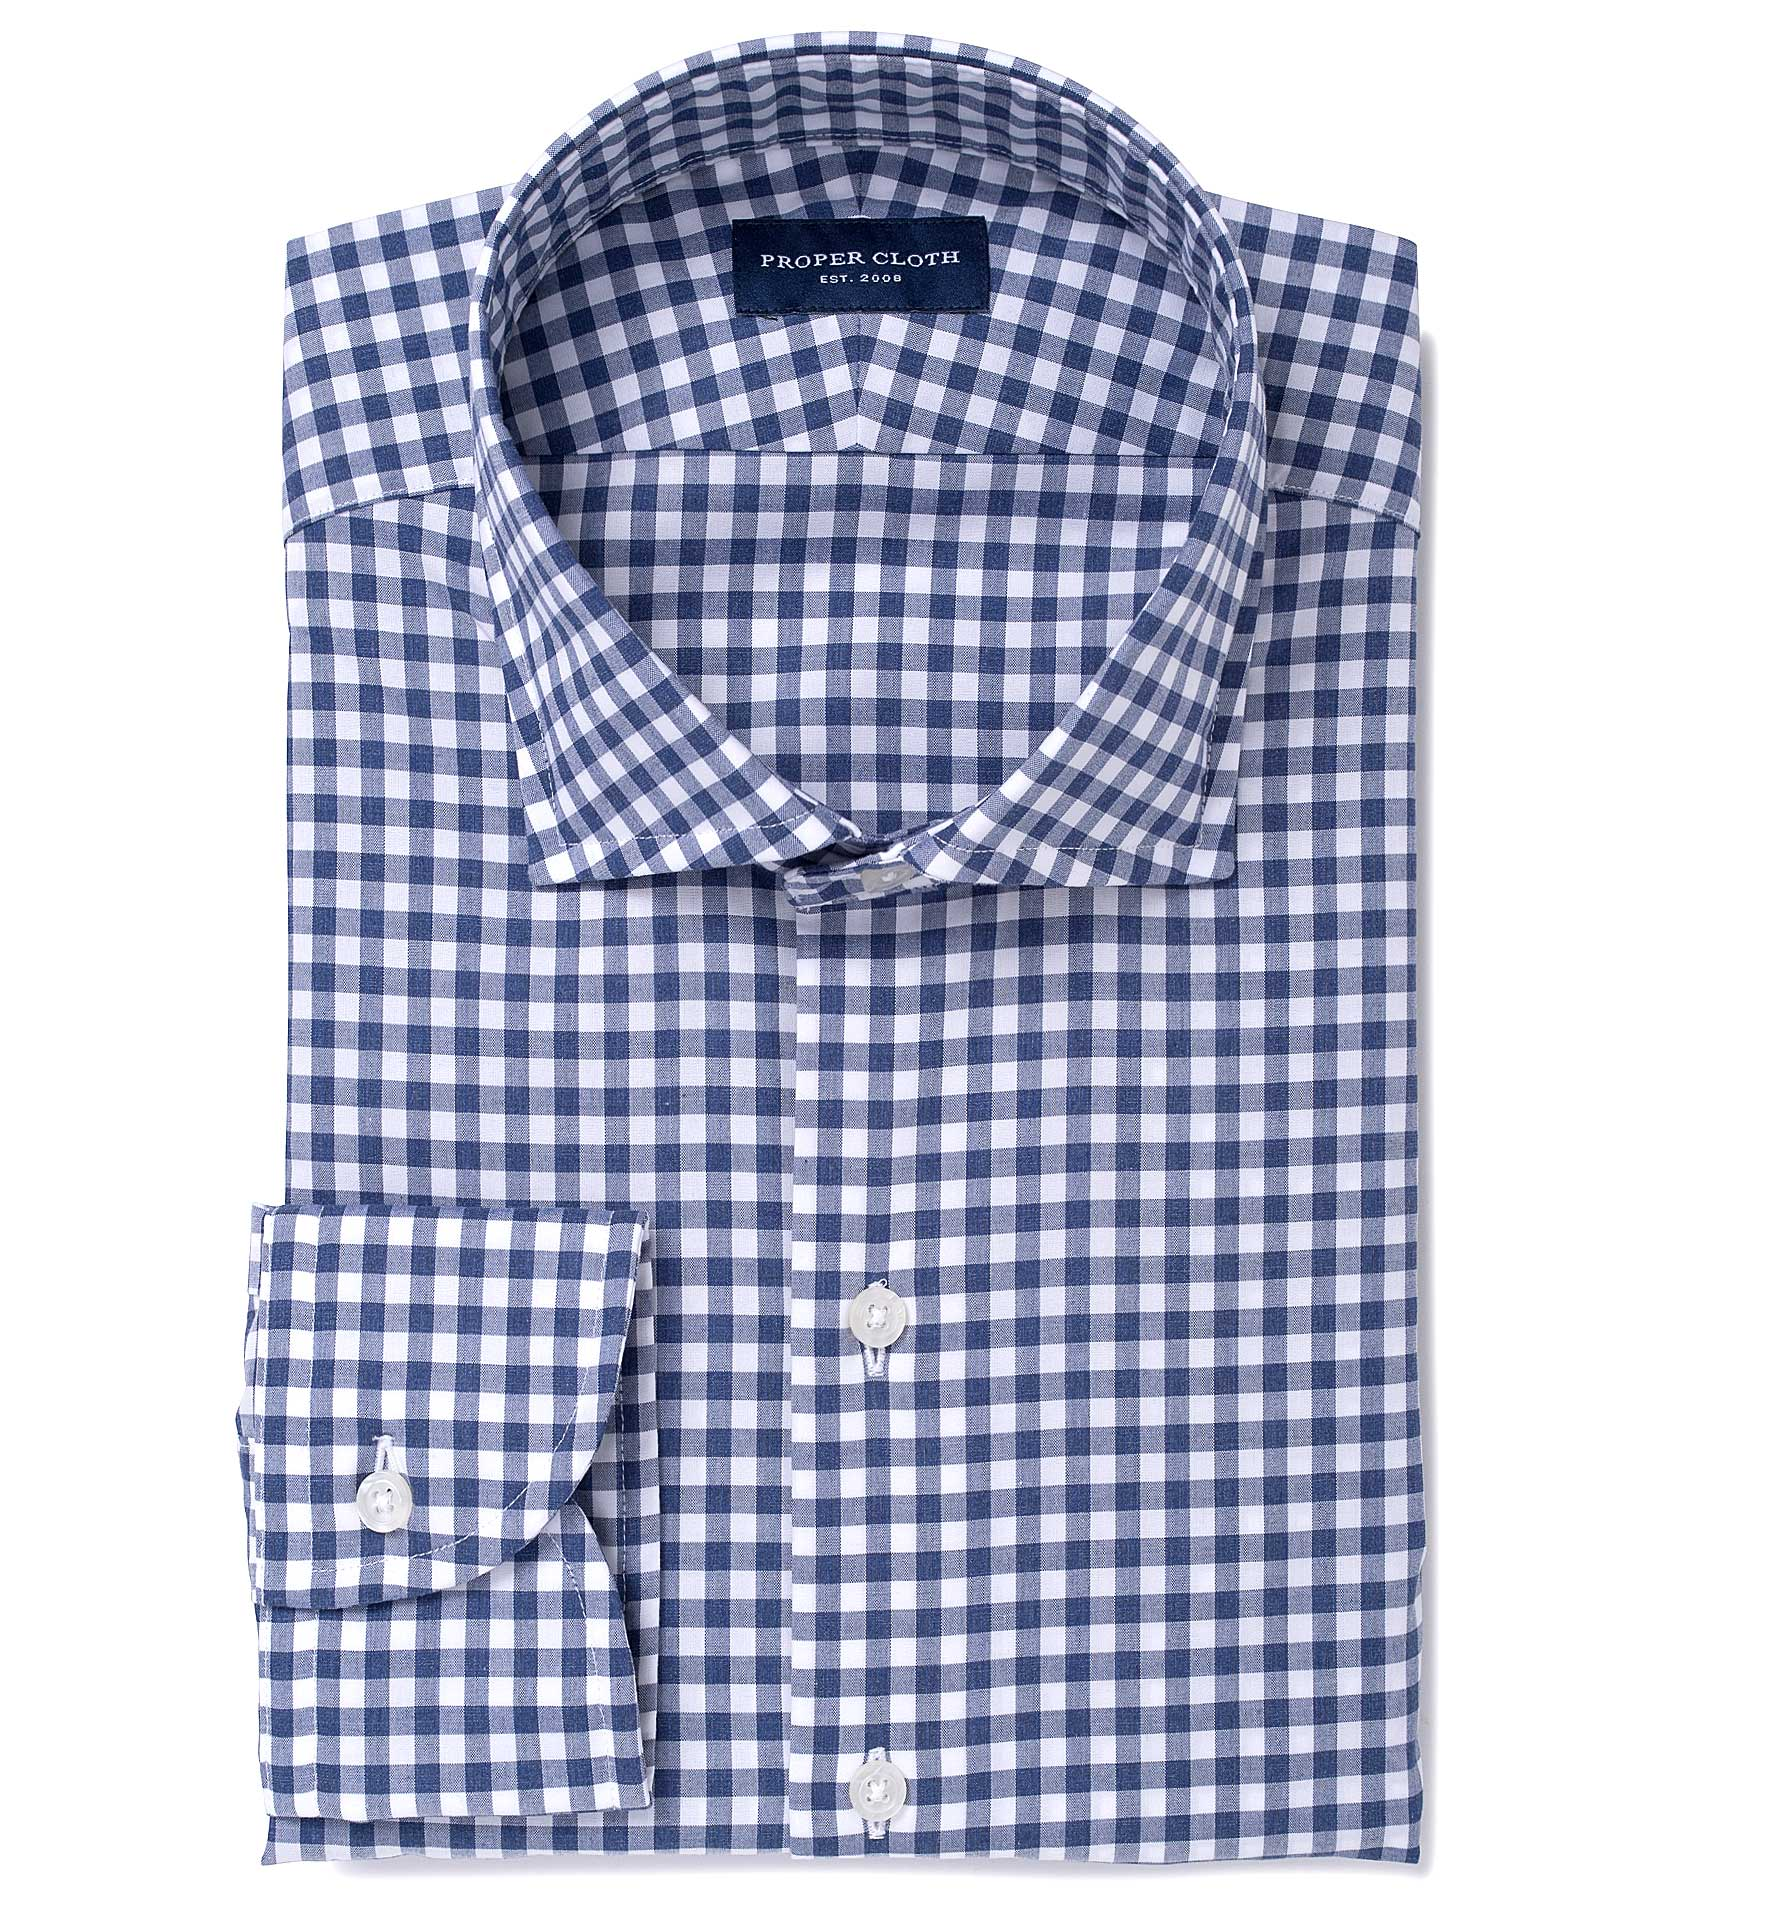 Navy Melange Gingham Custom Dress Shirt By Proper Cloth